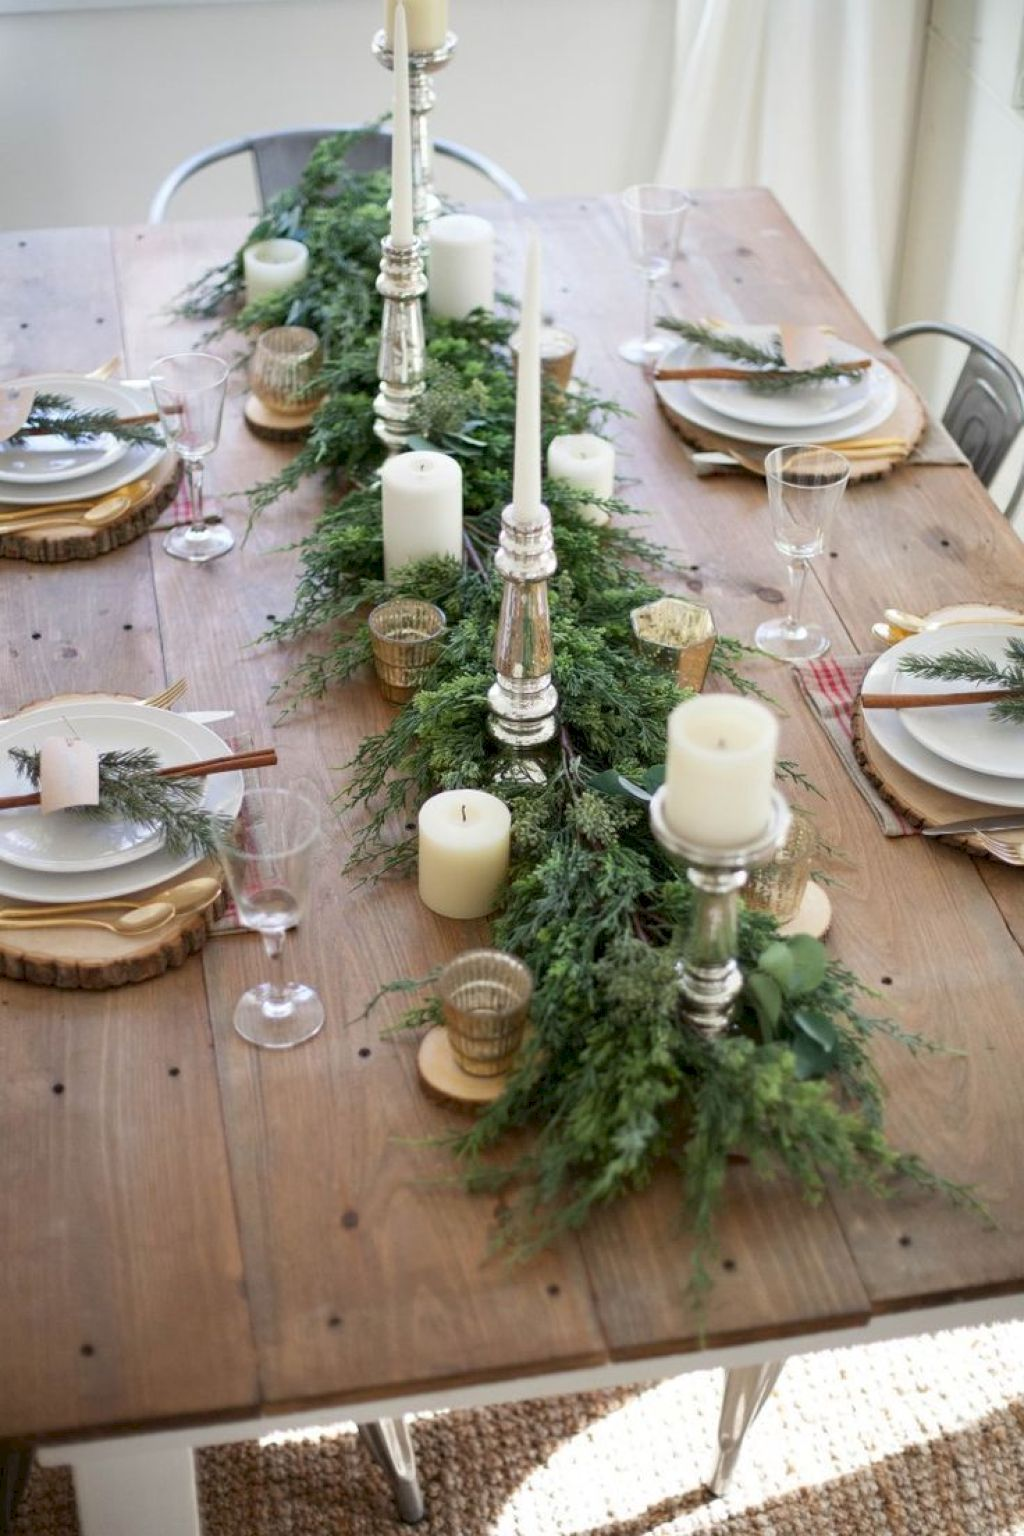 Cool 45 Christmas Dining Table Decor Ideas Source Link Https Decoreditor Com 45 Christmas Christmas Table Decorations Christmas Tablescapes Christmas Table